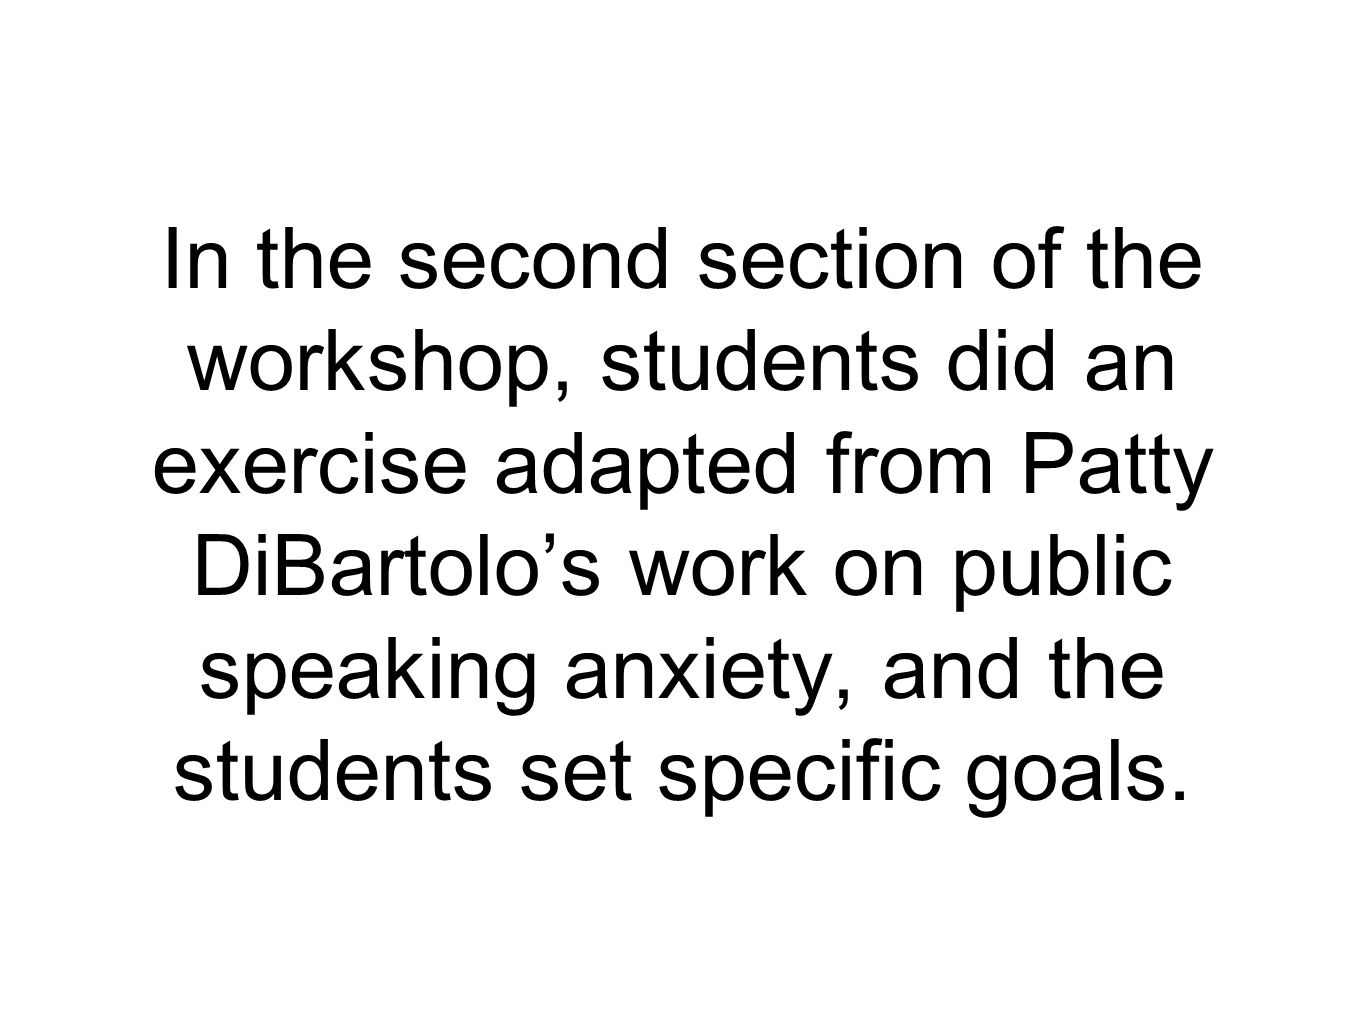 In the second section of the workshop, students did an exercise adapted from Patty DiBartolo's work on public speaking anxiety, and the students set s